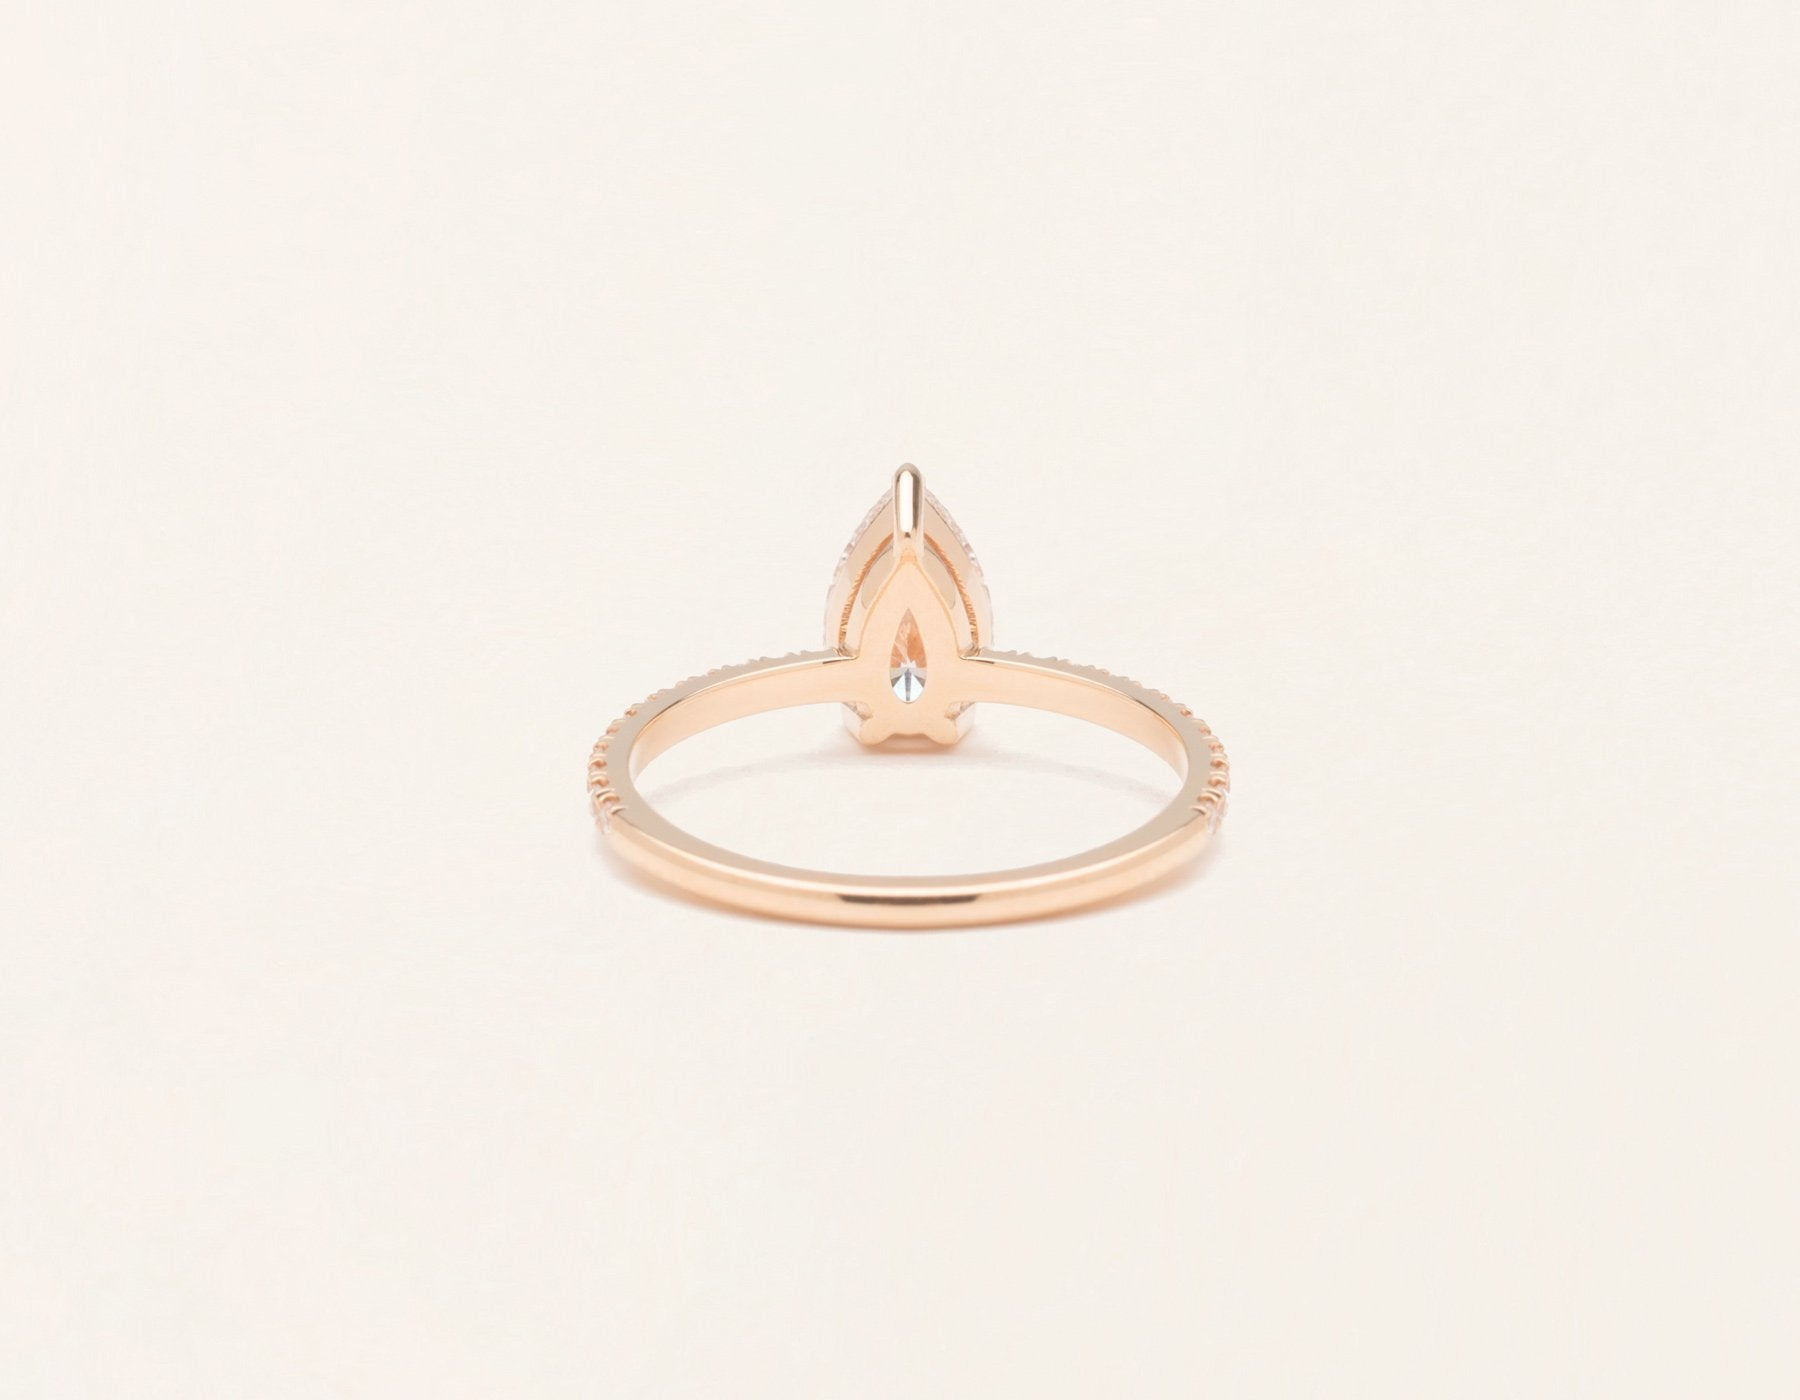 Simple modern 18k solid rose gold 1 carat pear pave diamond engagement ring Vrai & Oro